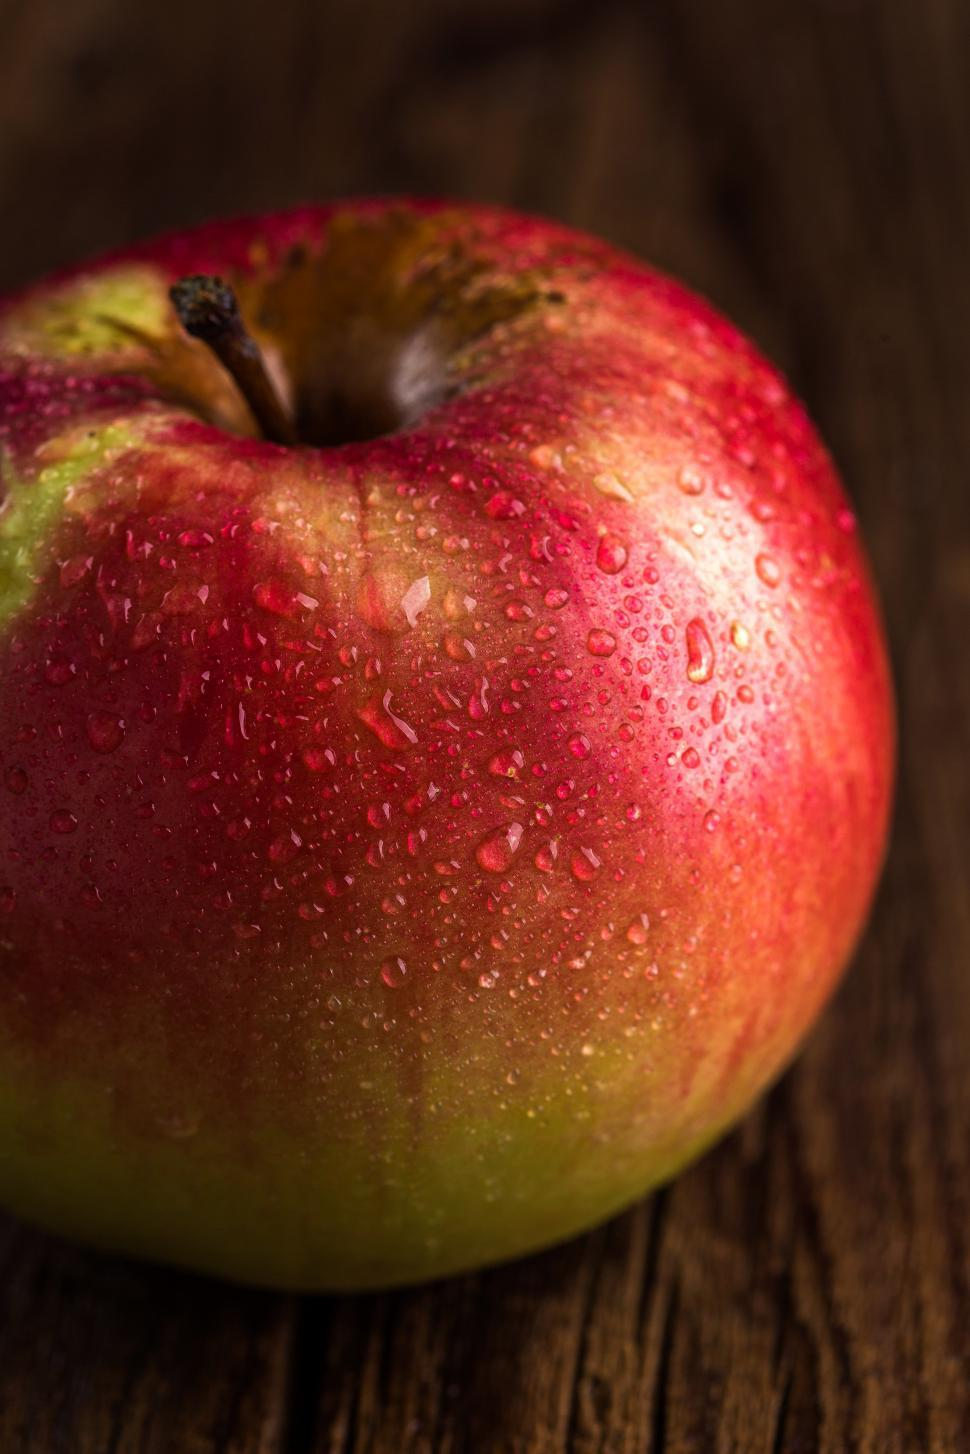 Download Free Stock HD Photo of Red Apple on table Online